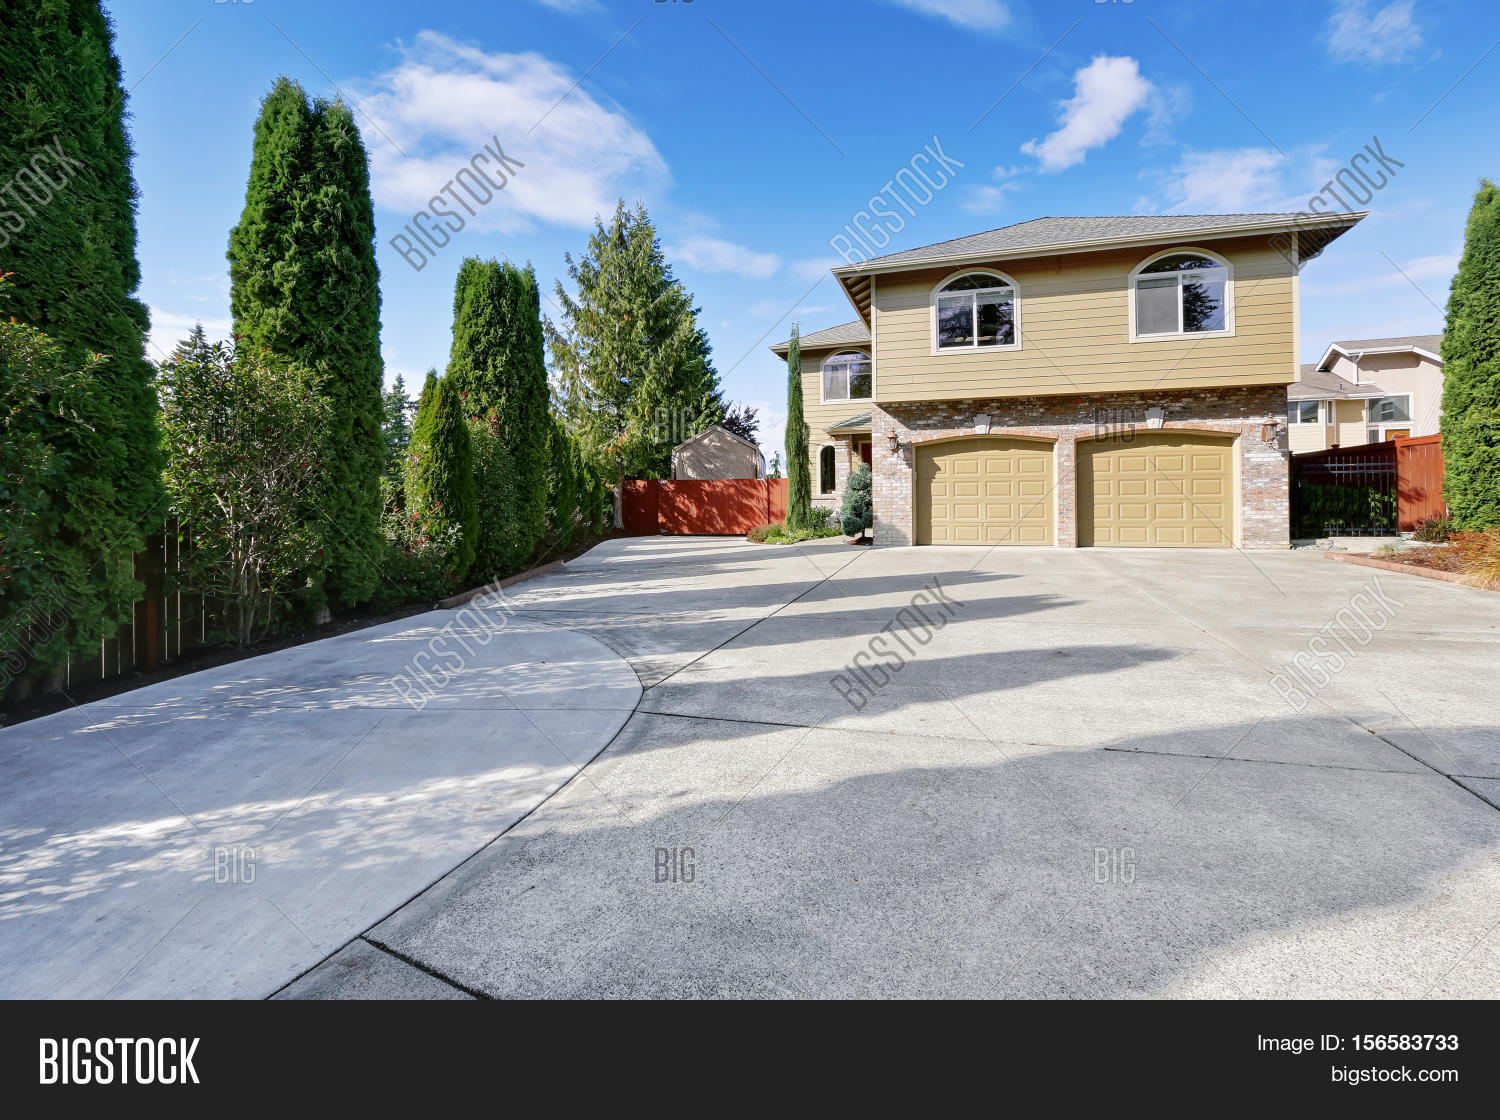 Luxury House In Green Exterior Paint And Large Concrete Driveway Stock Photo Stock Images